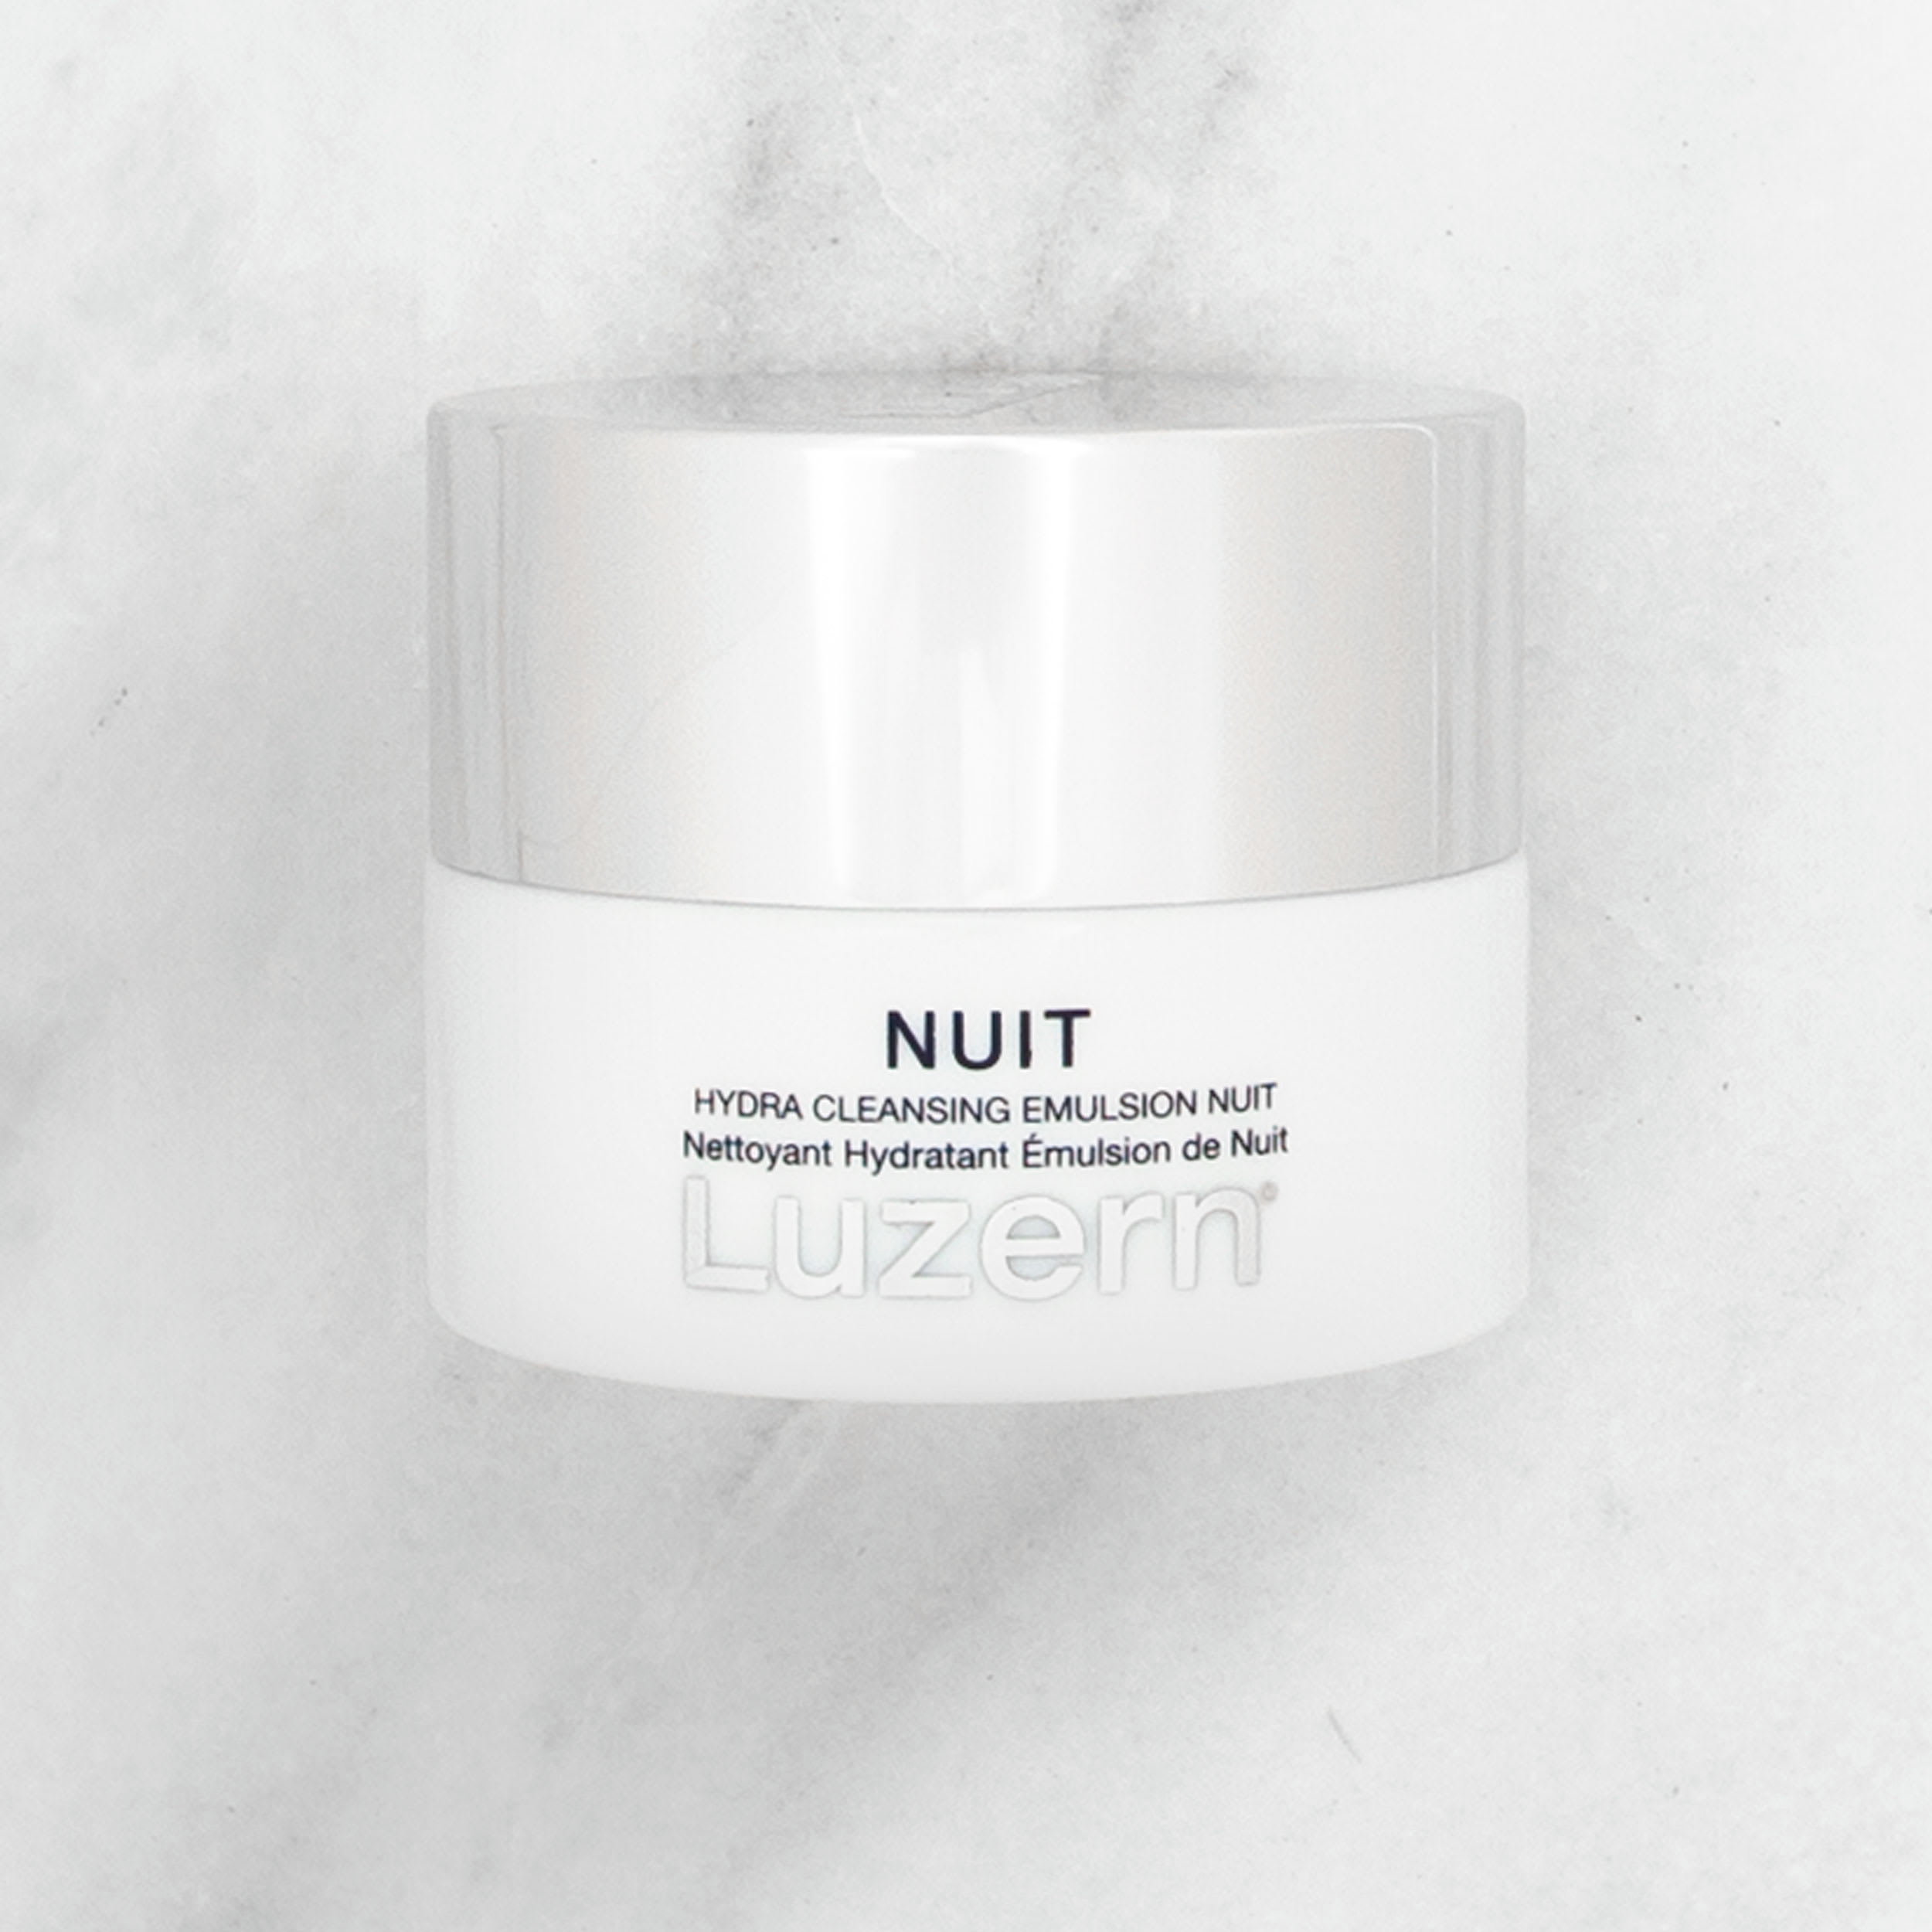 Luzern's Nuit Hydra Cleansing Emulsion